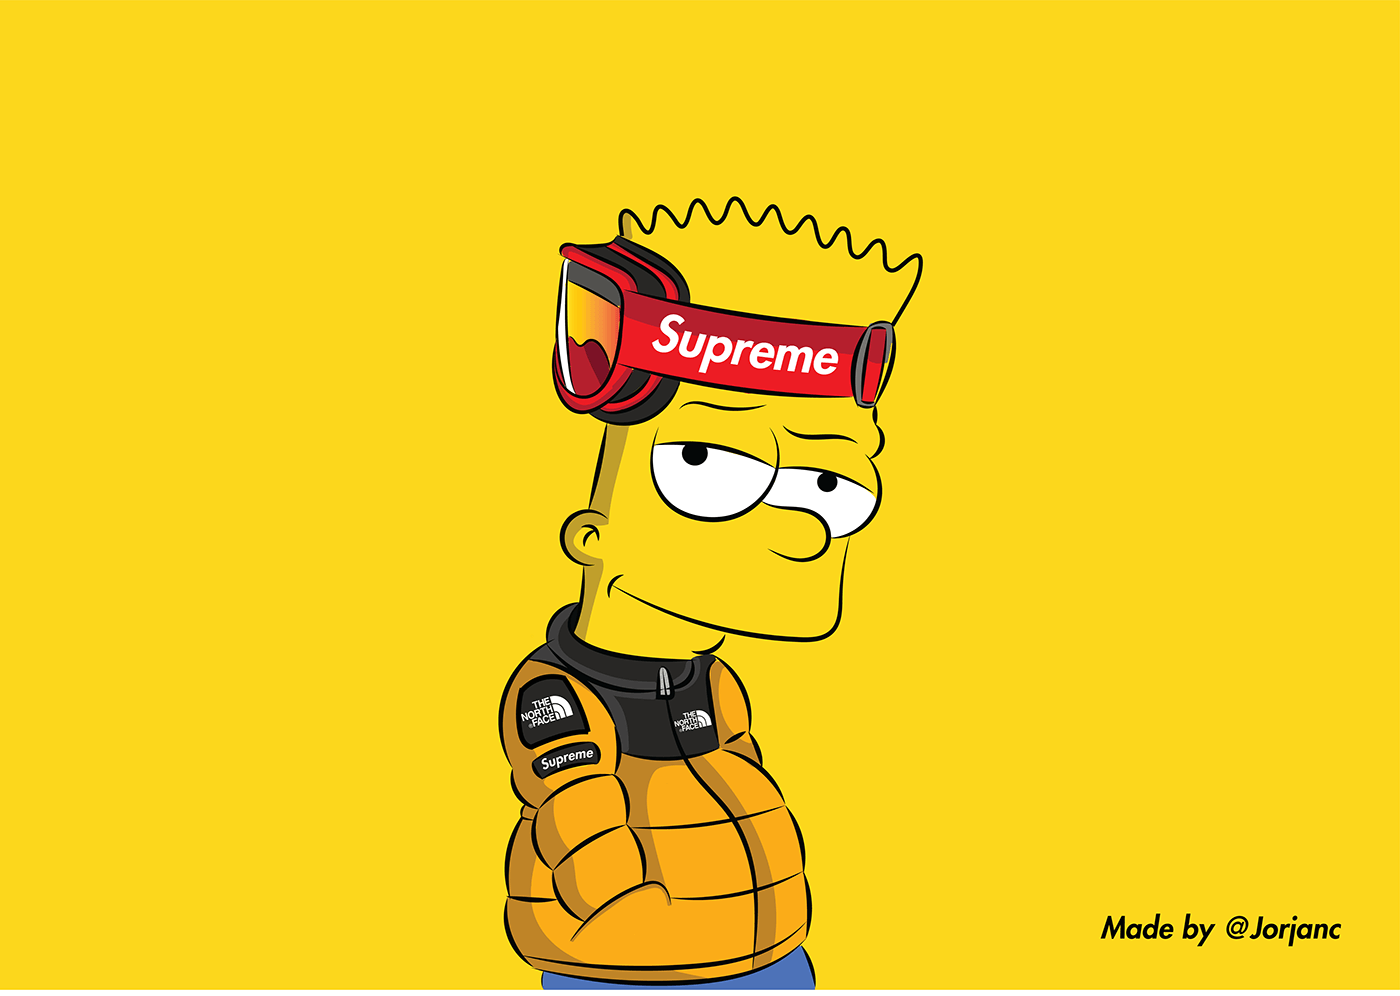 Free Download Supreme Bart Simpson Wallpapers Top Supreme Bart